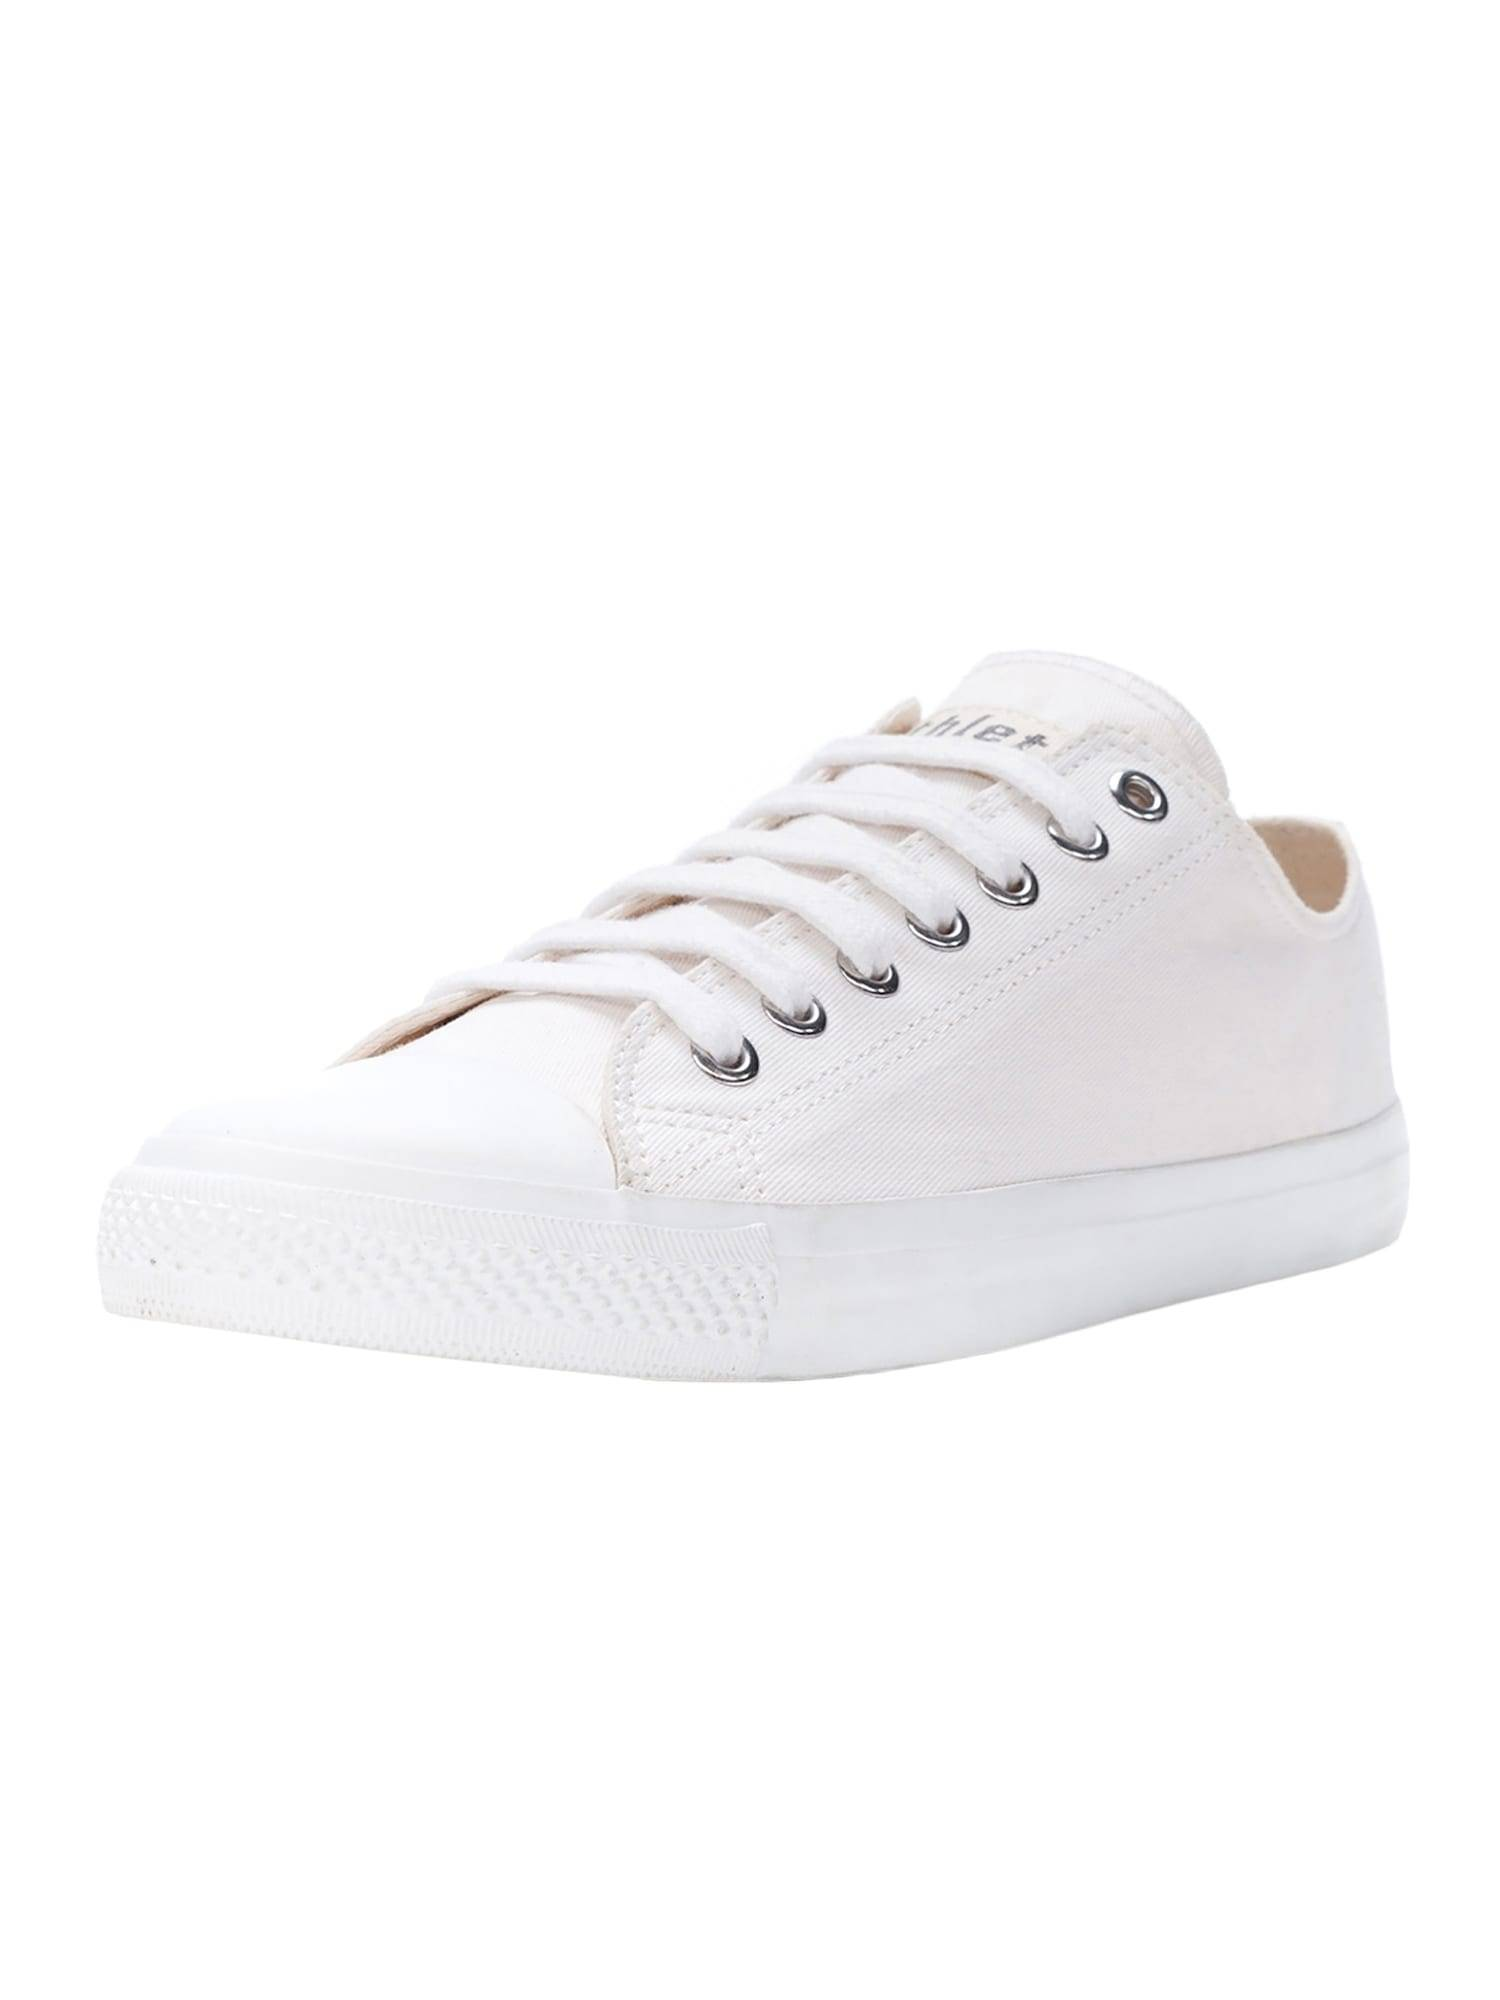 Ethletic Baskets basses 'Fair Trainer White Cap Low Cut'  - Blanc - Taille: 43 - male